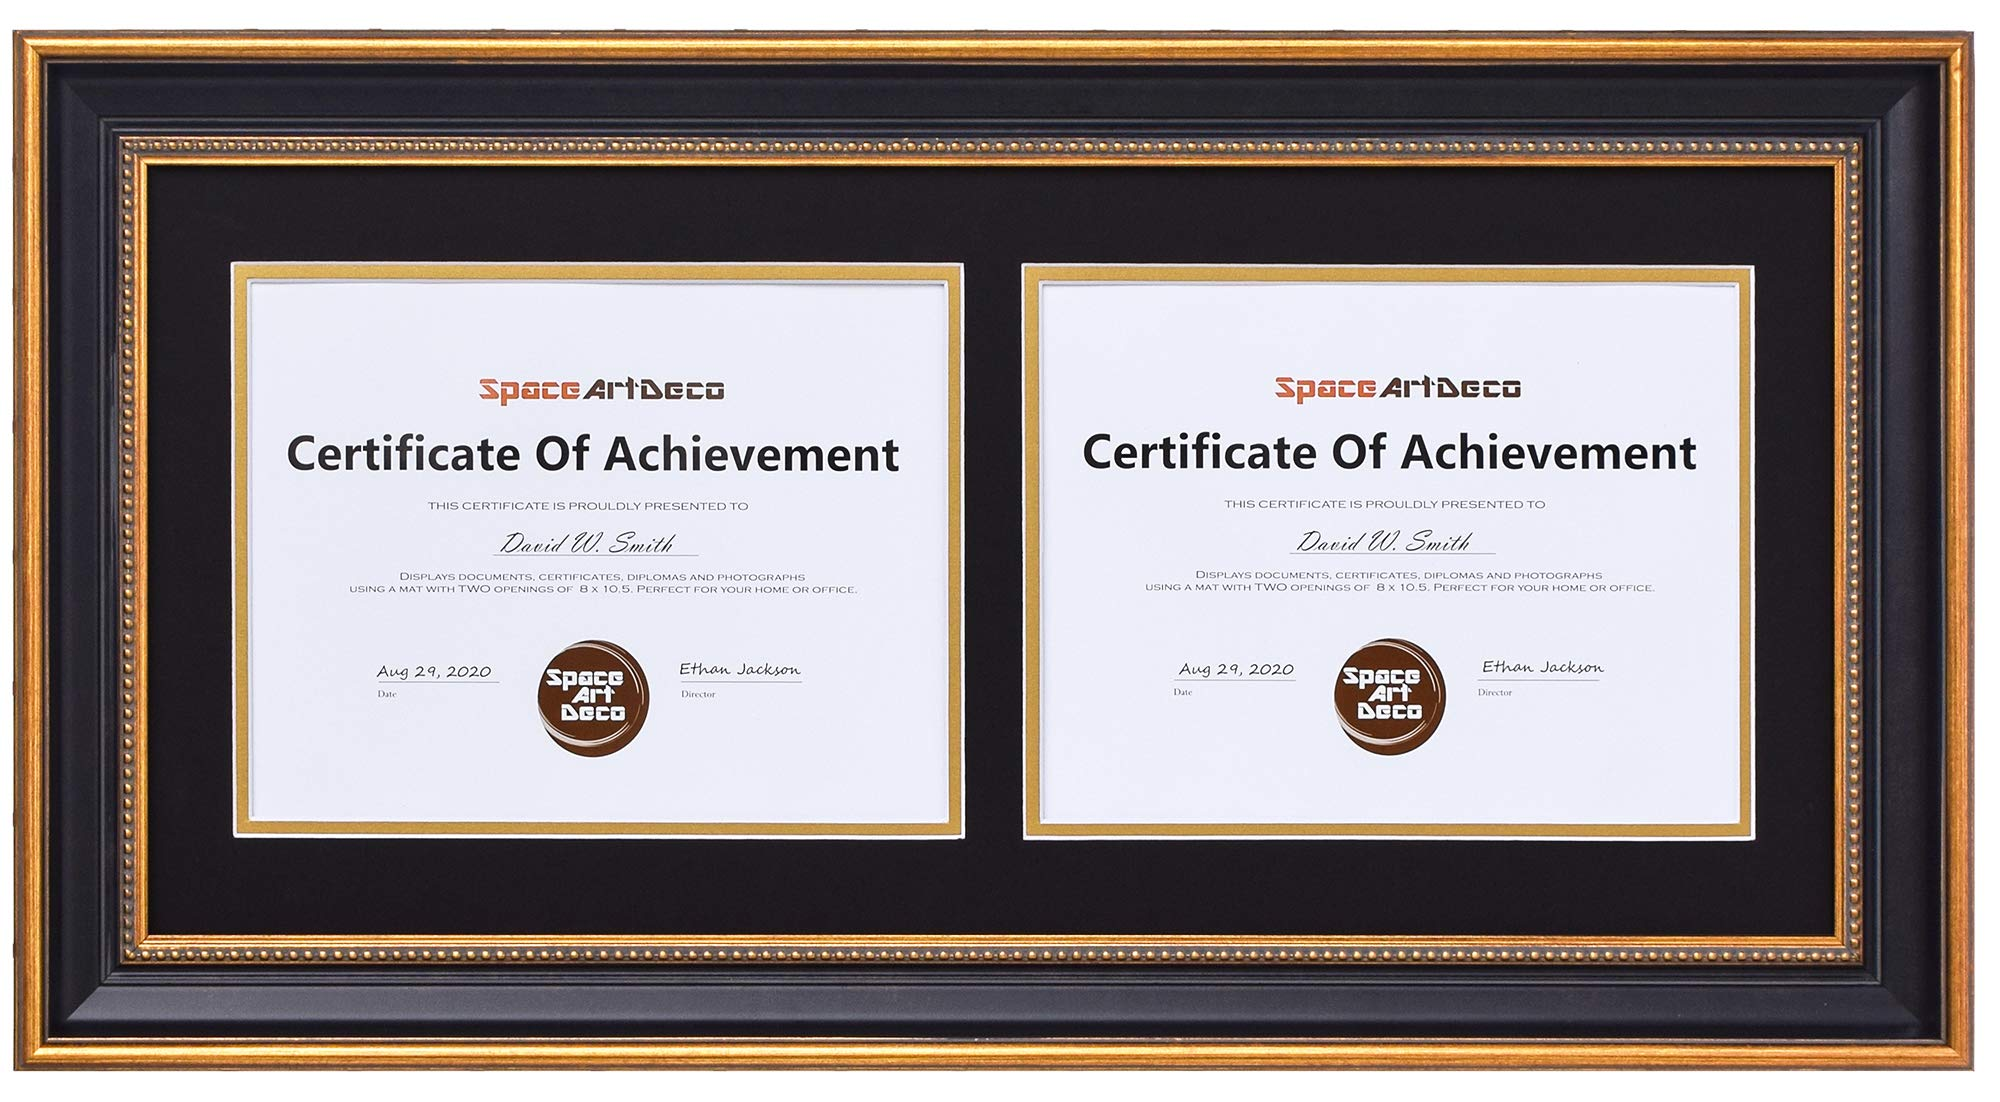 Space Art Deco Ornate Gold Black Horizontal Double Certificate/Diploma Frame - Black Over Gold Double Mat - for Two 8.5 x 11 Certificates and Diplomas- Sawtooth Hangers - Wall Mount - Glass (Ornate) by Space Art Deco